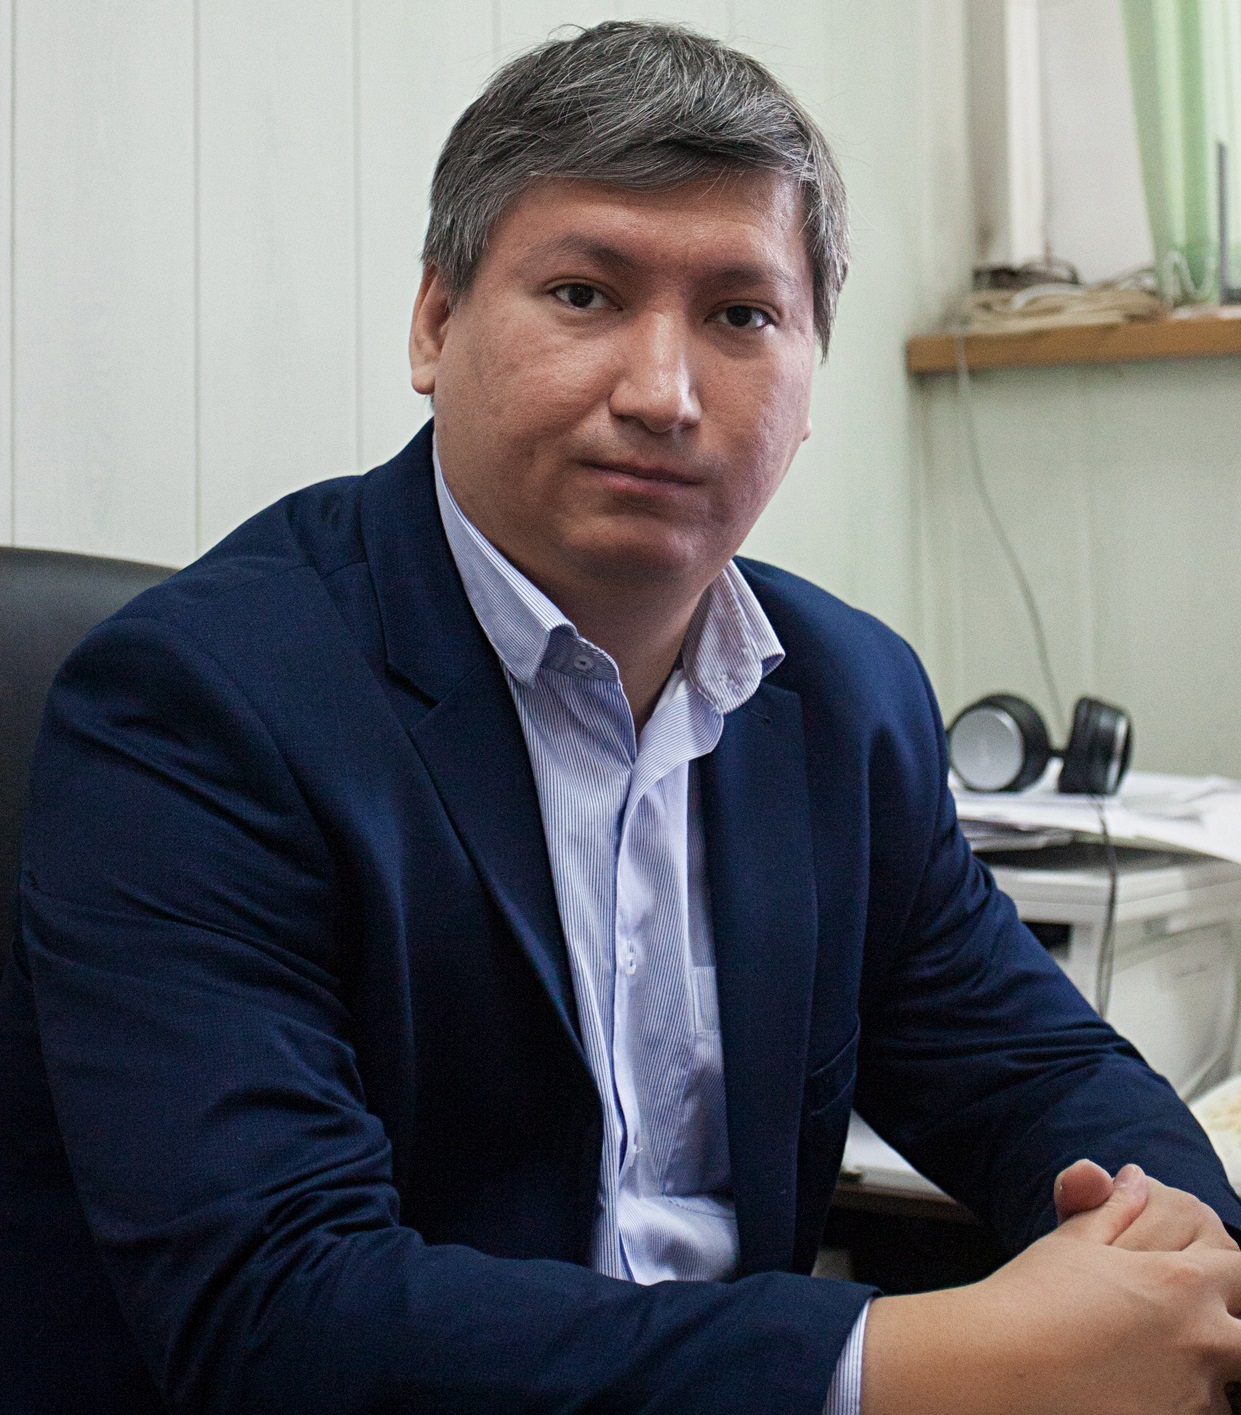 Bulat Kenessov was appointed as the new Deputy Chairman of the Science Committee of the Ministry of Education and Science of the Republic of Kazakhstan